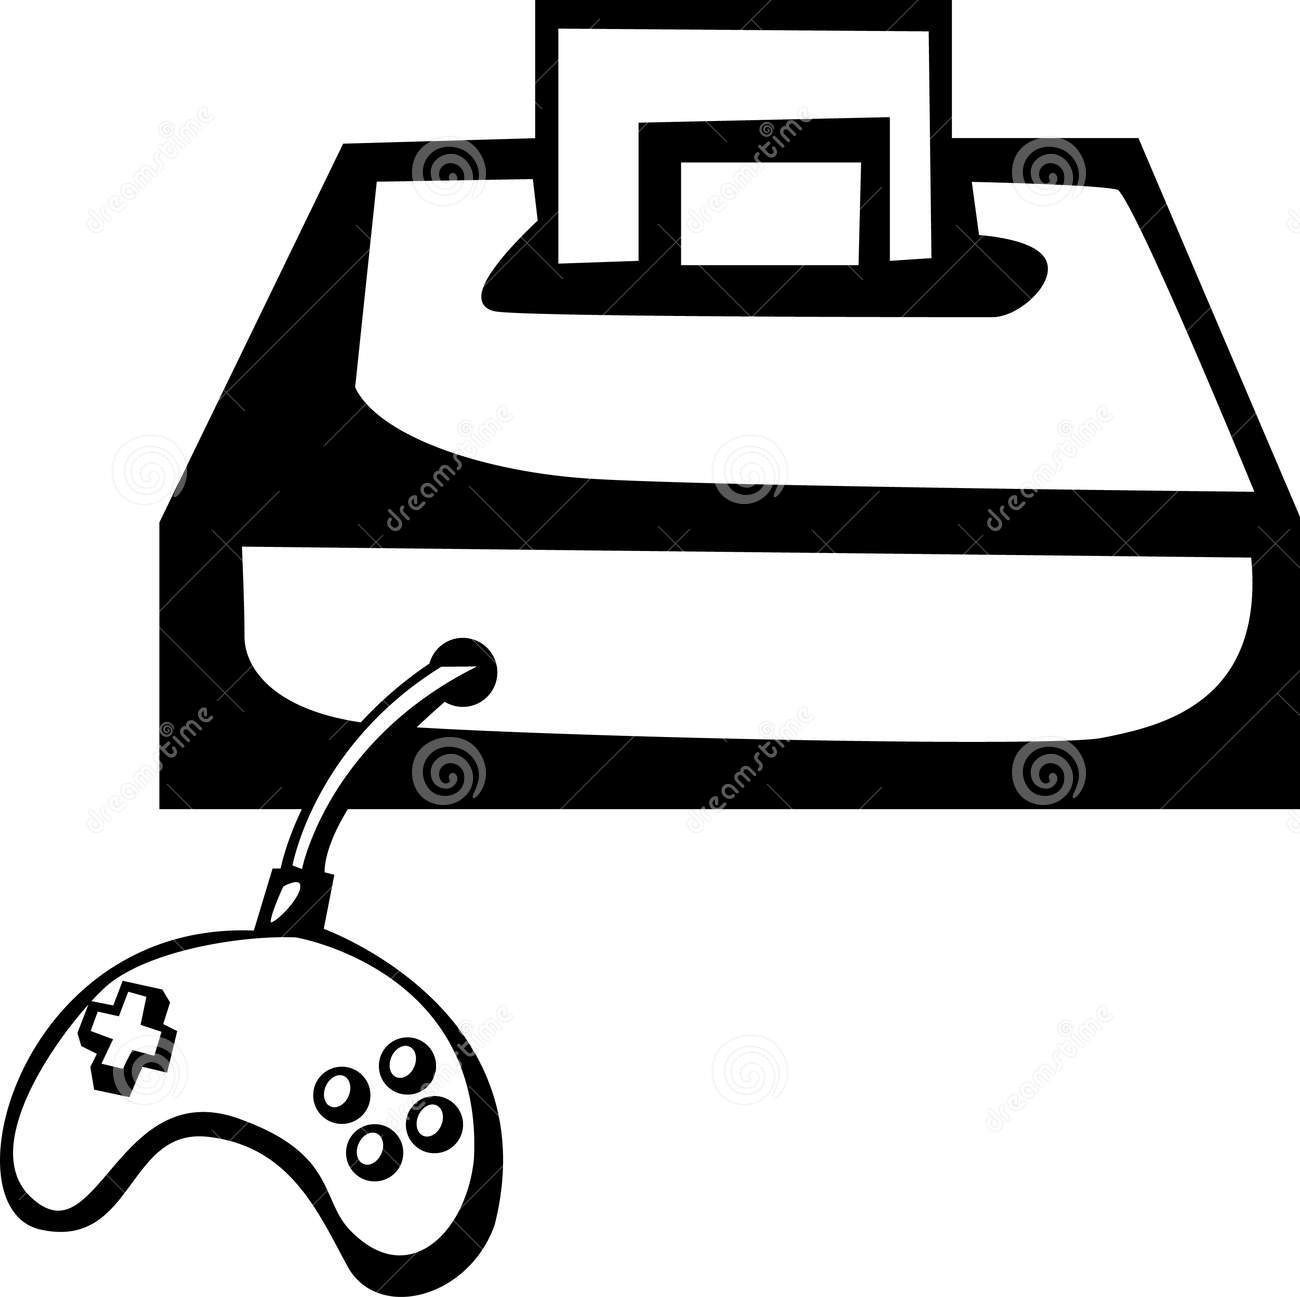 Video games in class clipart black and white free stock Video Game Clipart | Free download best Video Game Clipart ... free stock